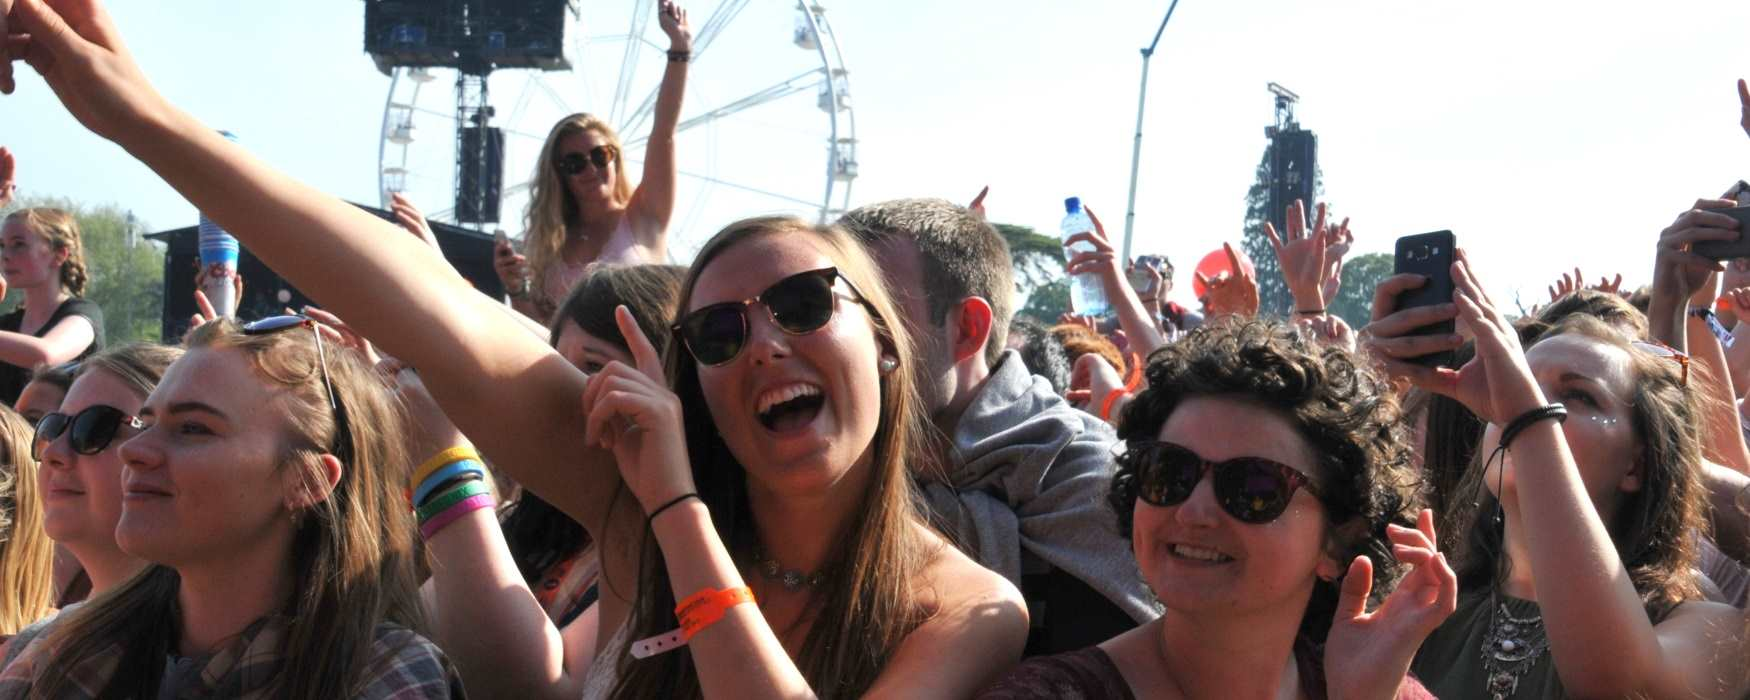 Radio 1's Big Weekend 2016 in Exeter